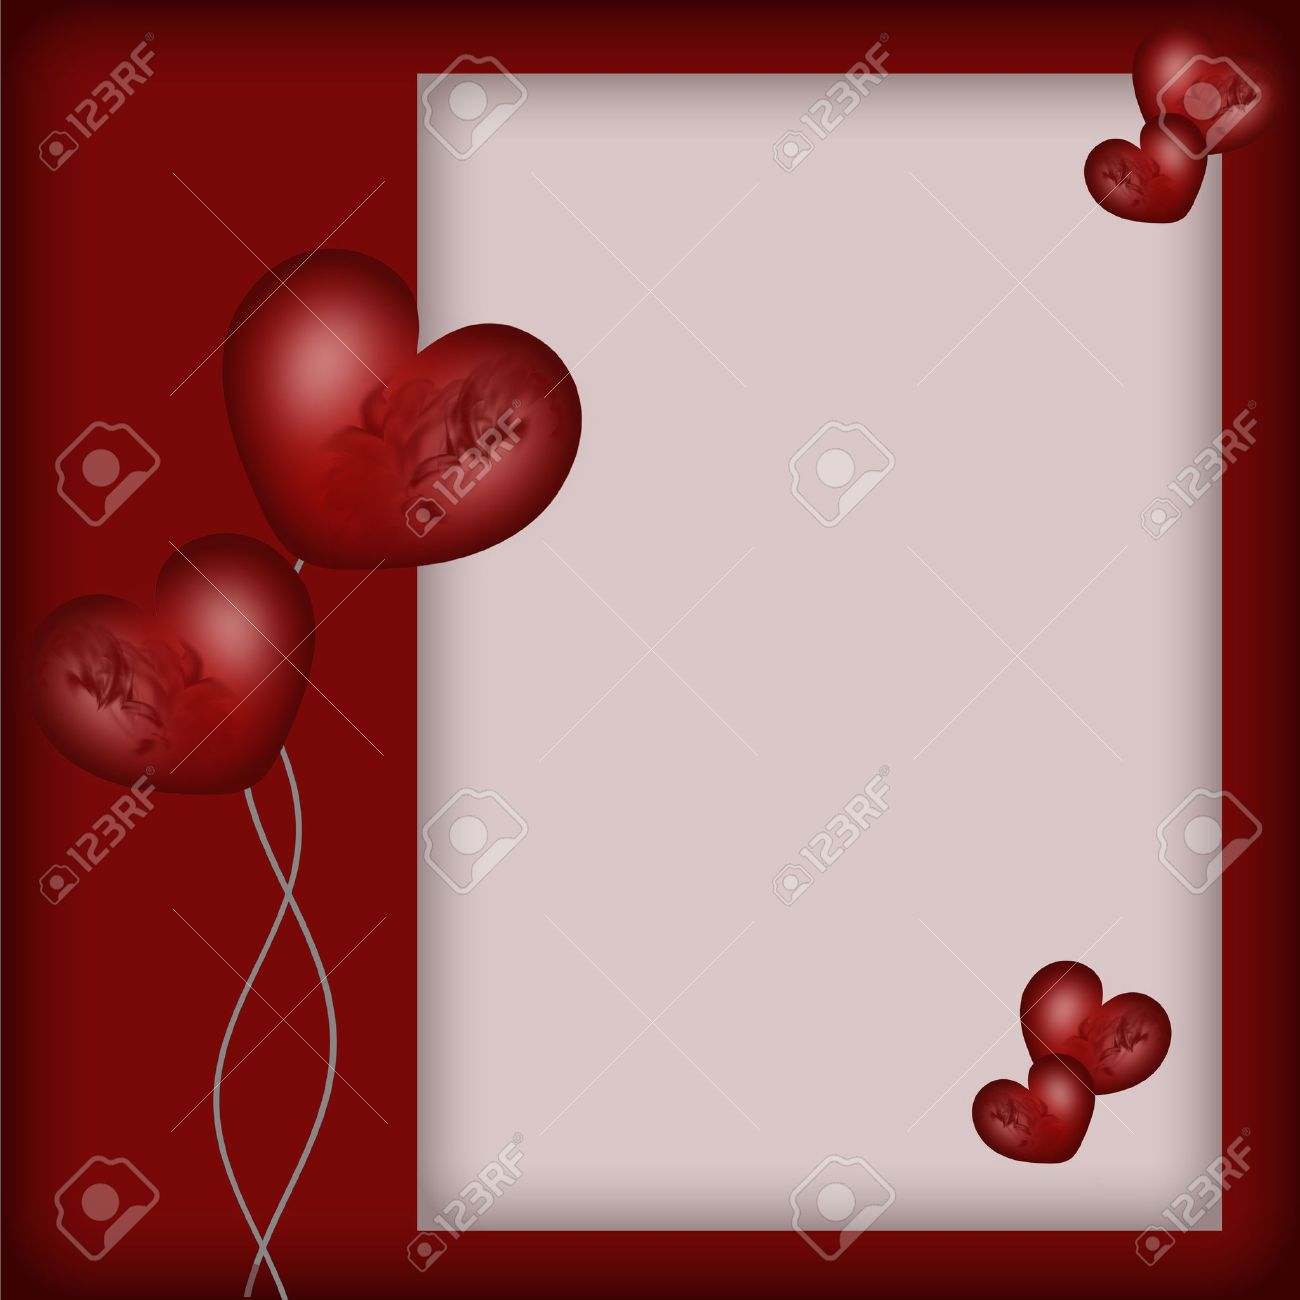 valentine's day card blank template - imgflip, Ideas